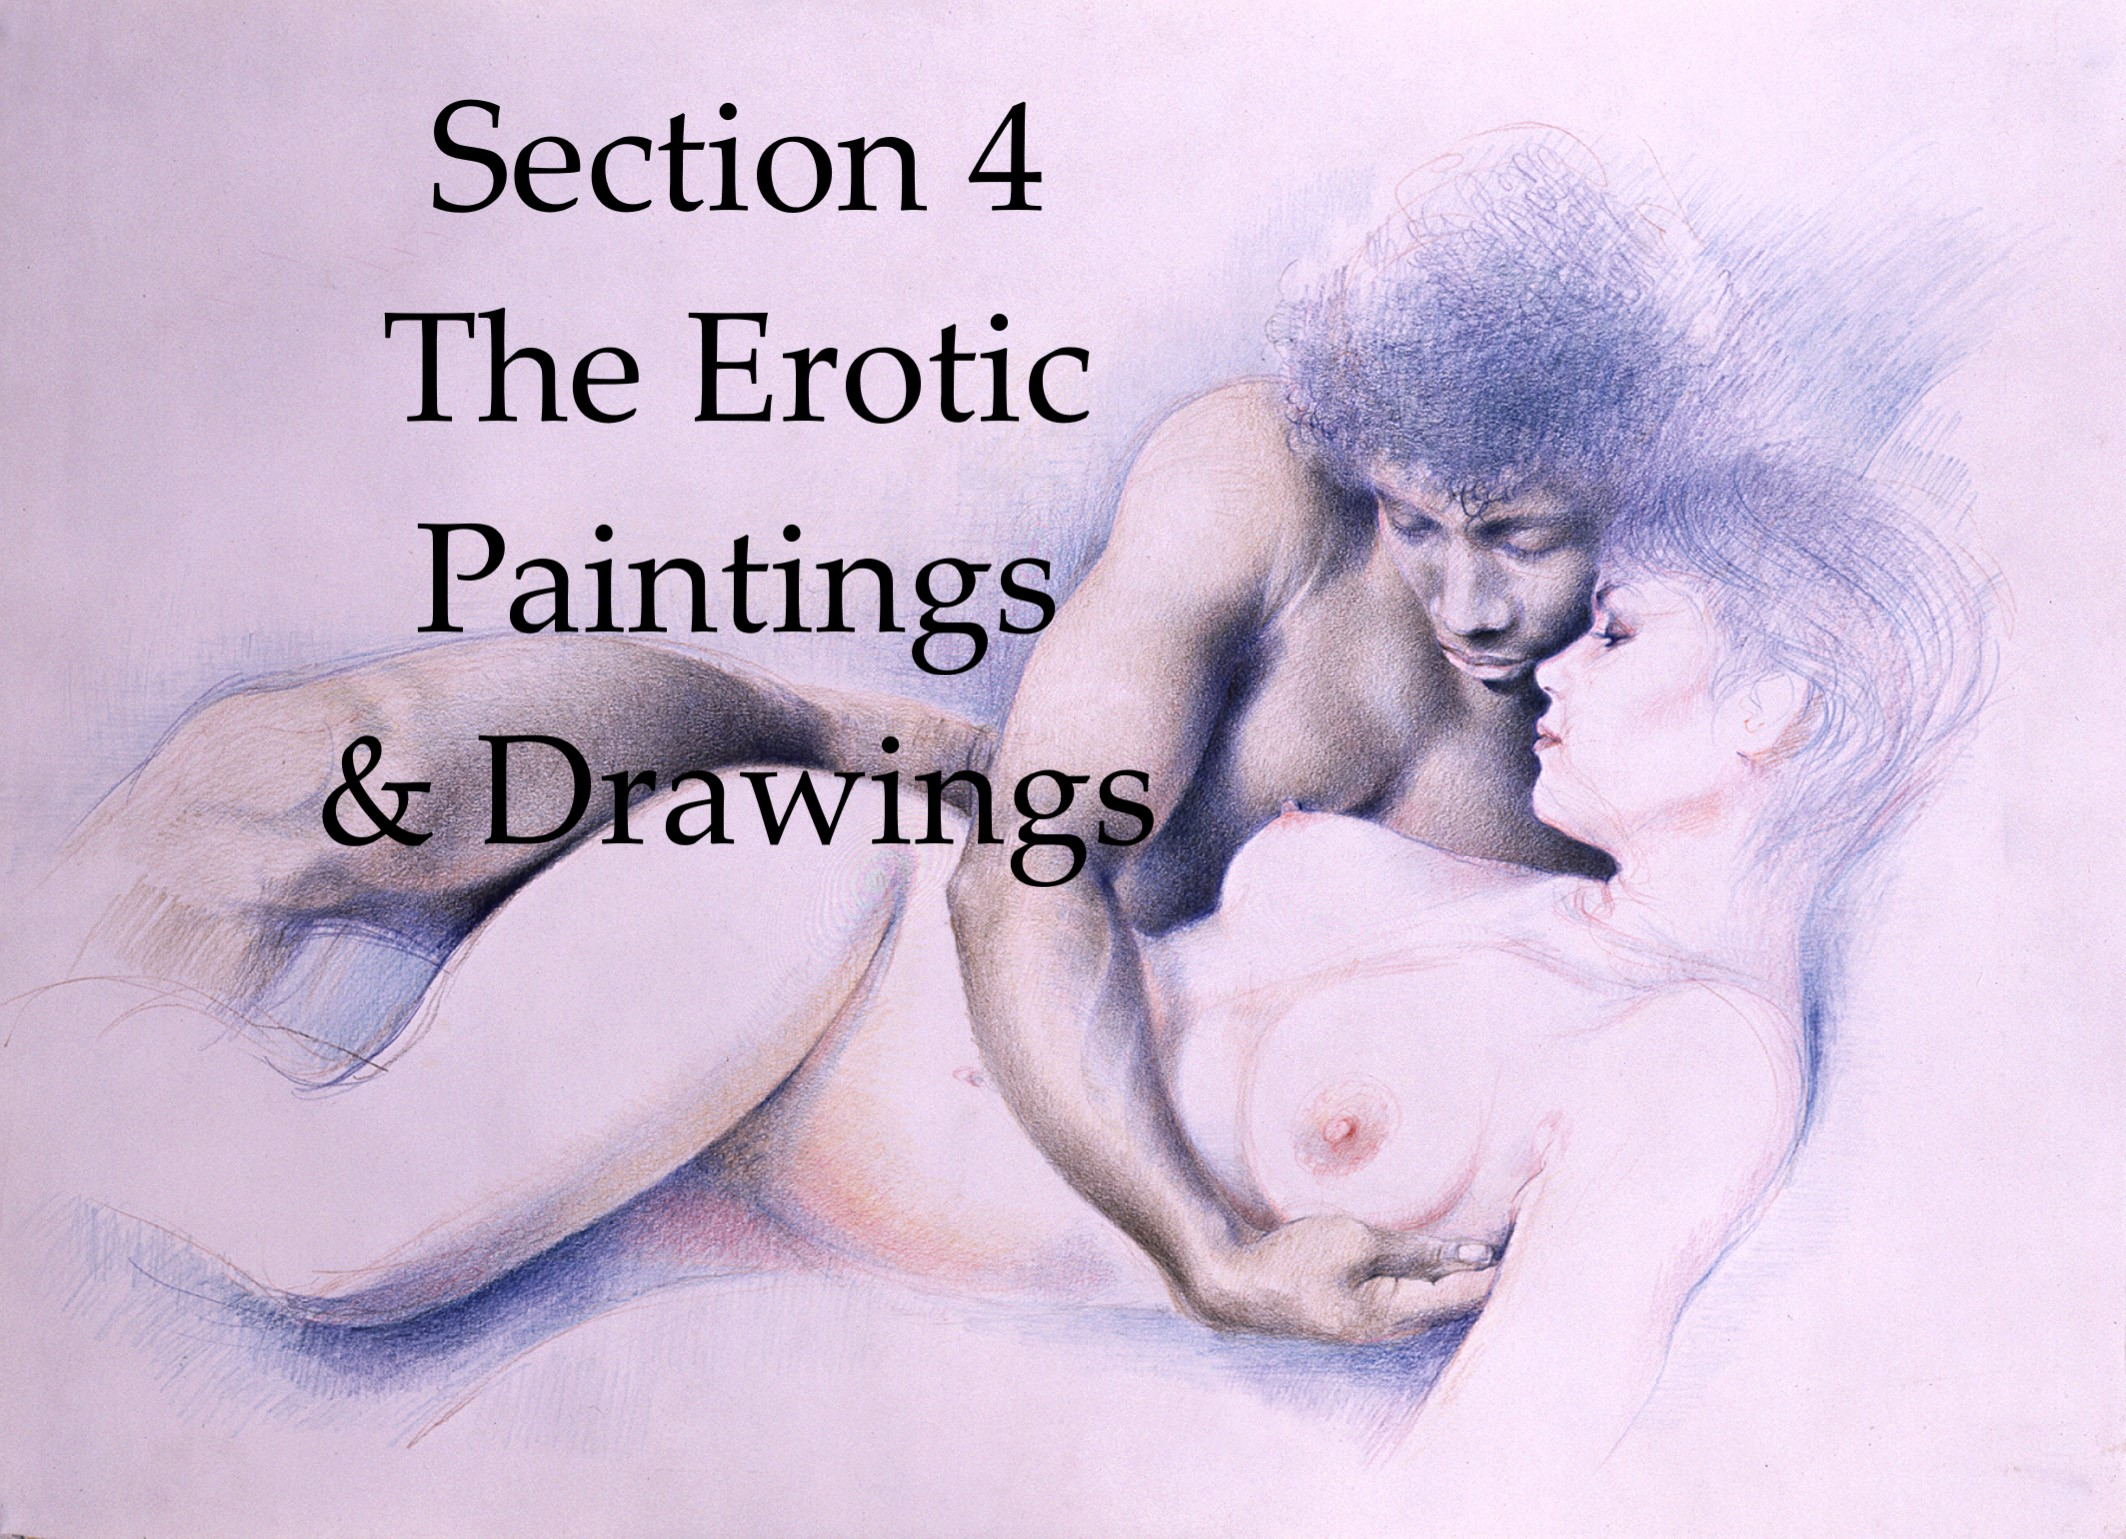 Section 4, The Erotic Paintings & Drawings - Talisman Fine Art